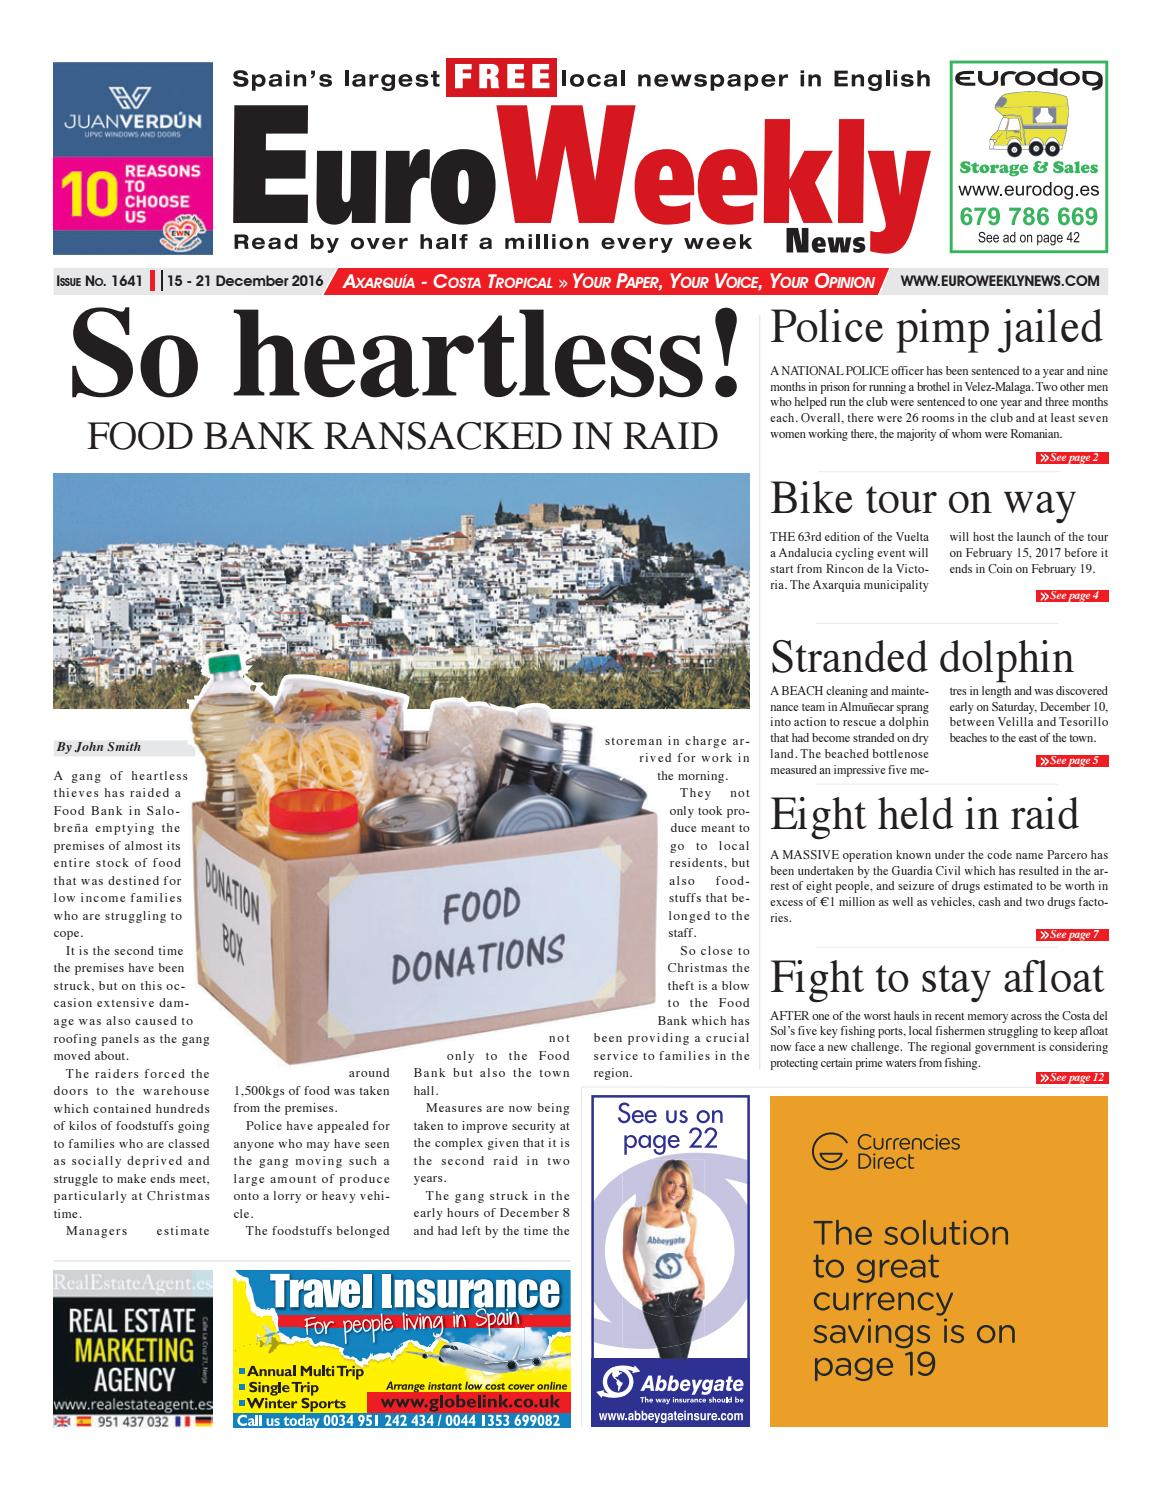 e87d465f7b9 Euro Weekly News - Axarquia 15 - 21 December 2016 Issue 1641 by Euro ...